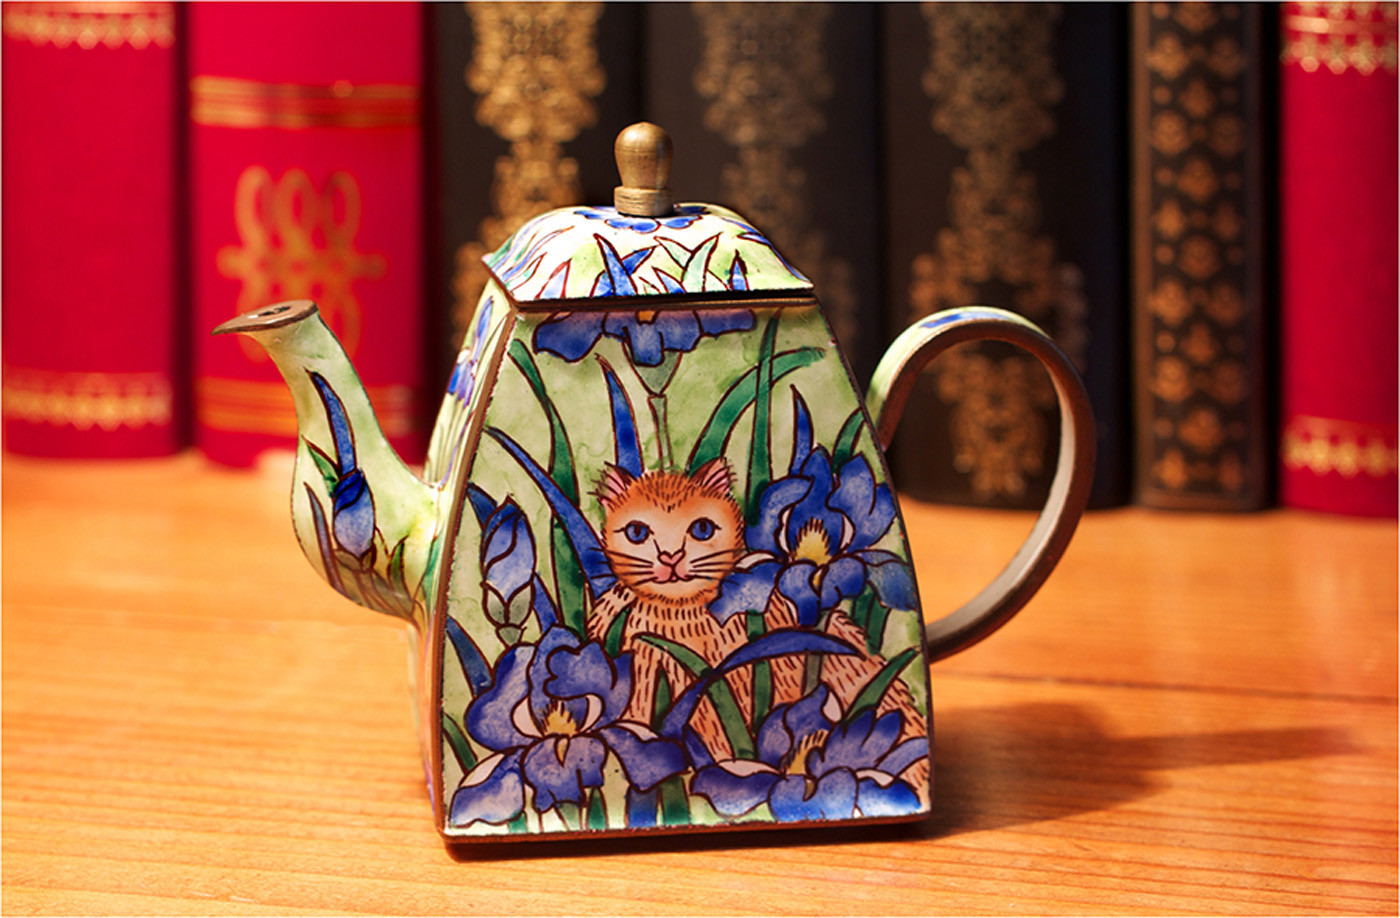 18 ETHNIC ART ORNAMENTAL TEAPOT by Dave Brooker